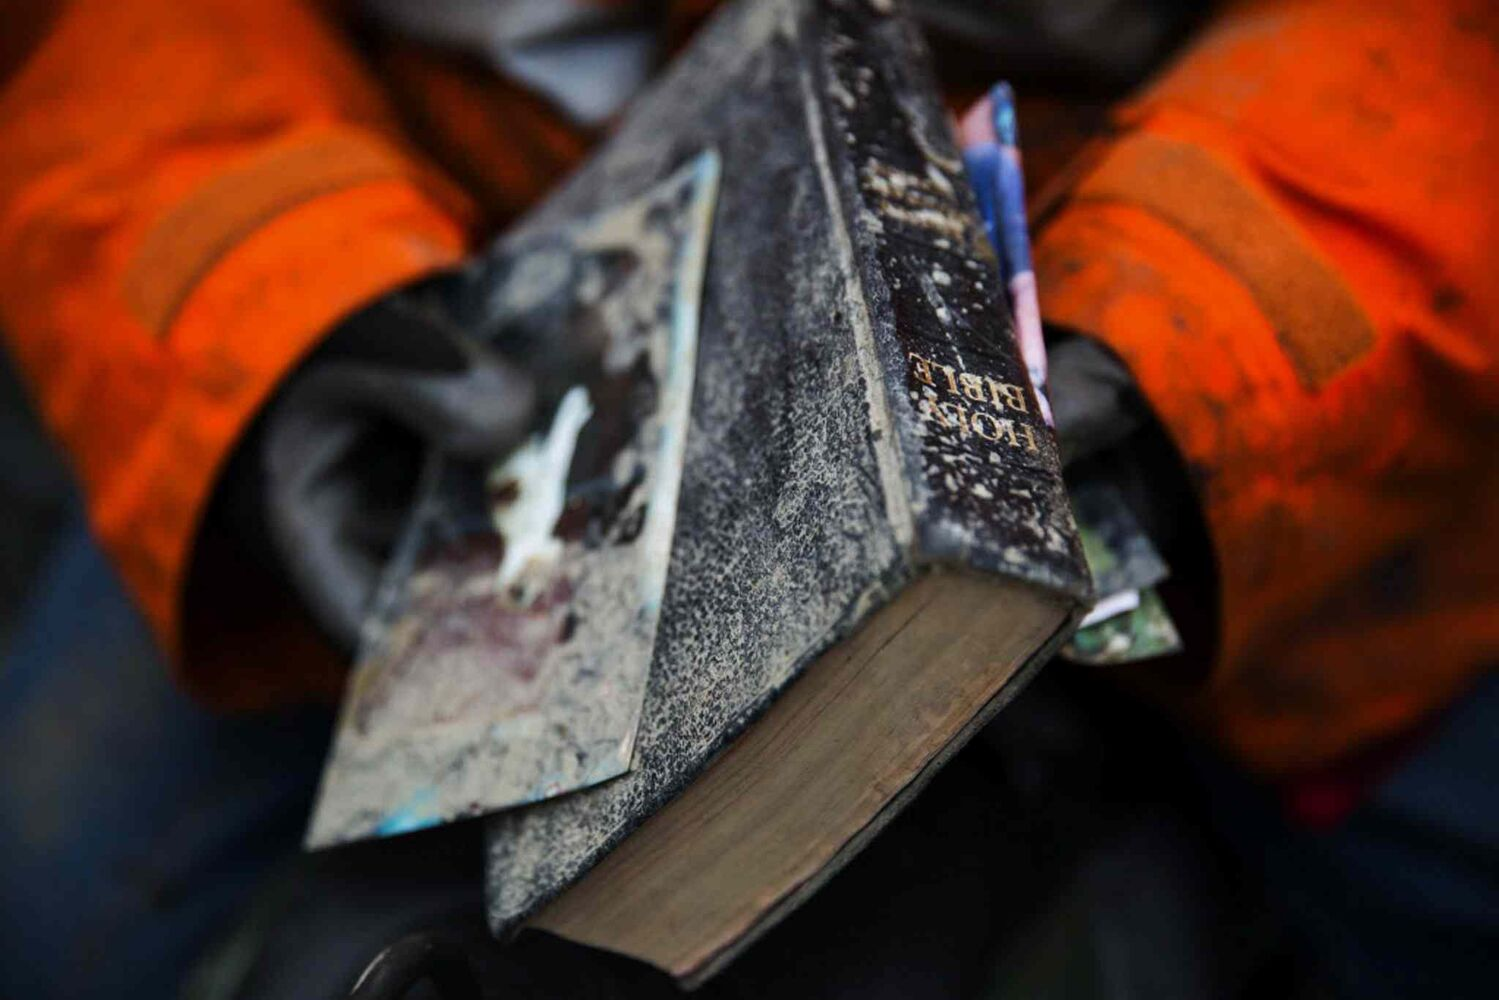 Elaine Young holds a bible pulled out of the debris field from the mudslide above the North Fork of the Stillaguamish River onto Highway 530, as recovery efforts are underway, near Oso, Wash.  (Marcus Yam / Seattle Times / MCT)